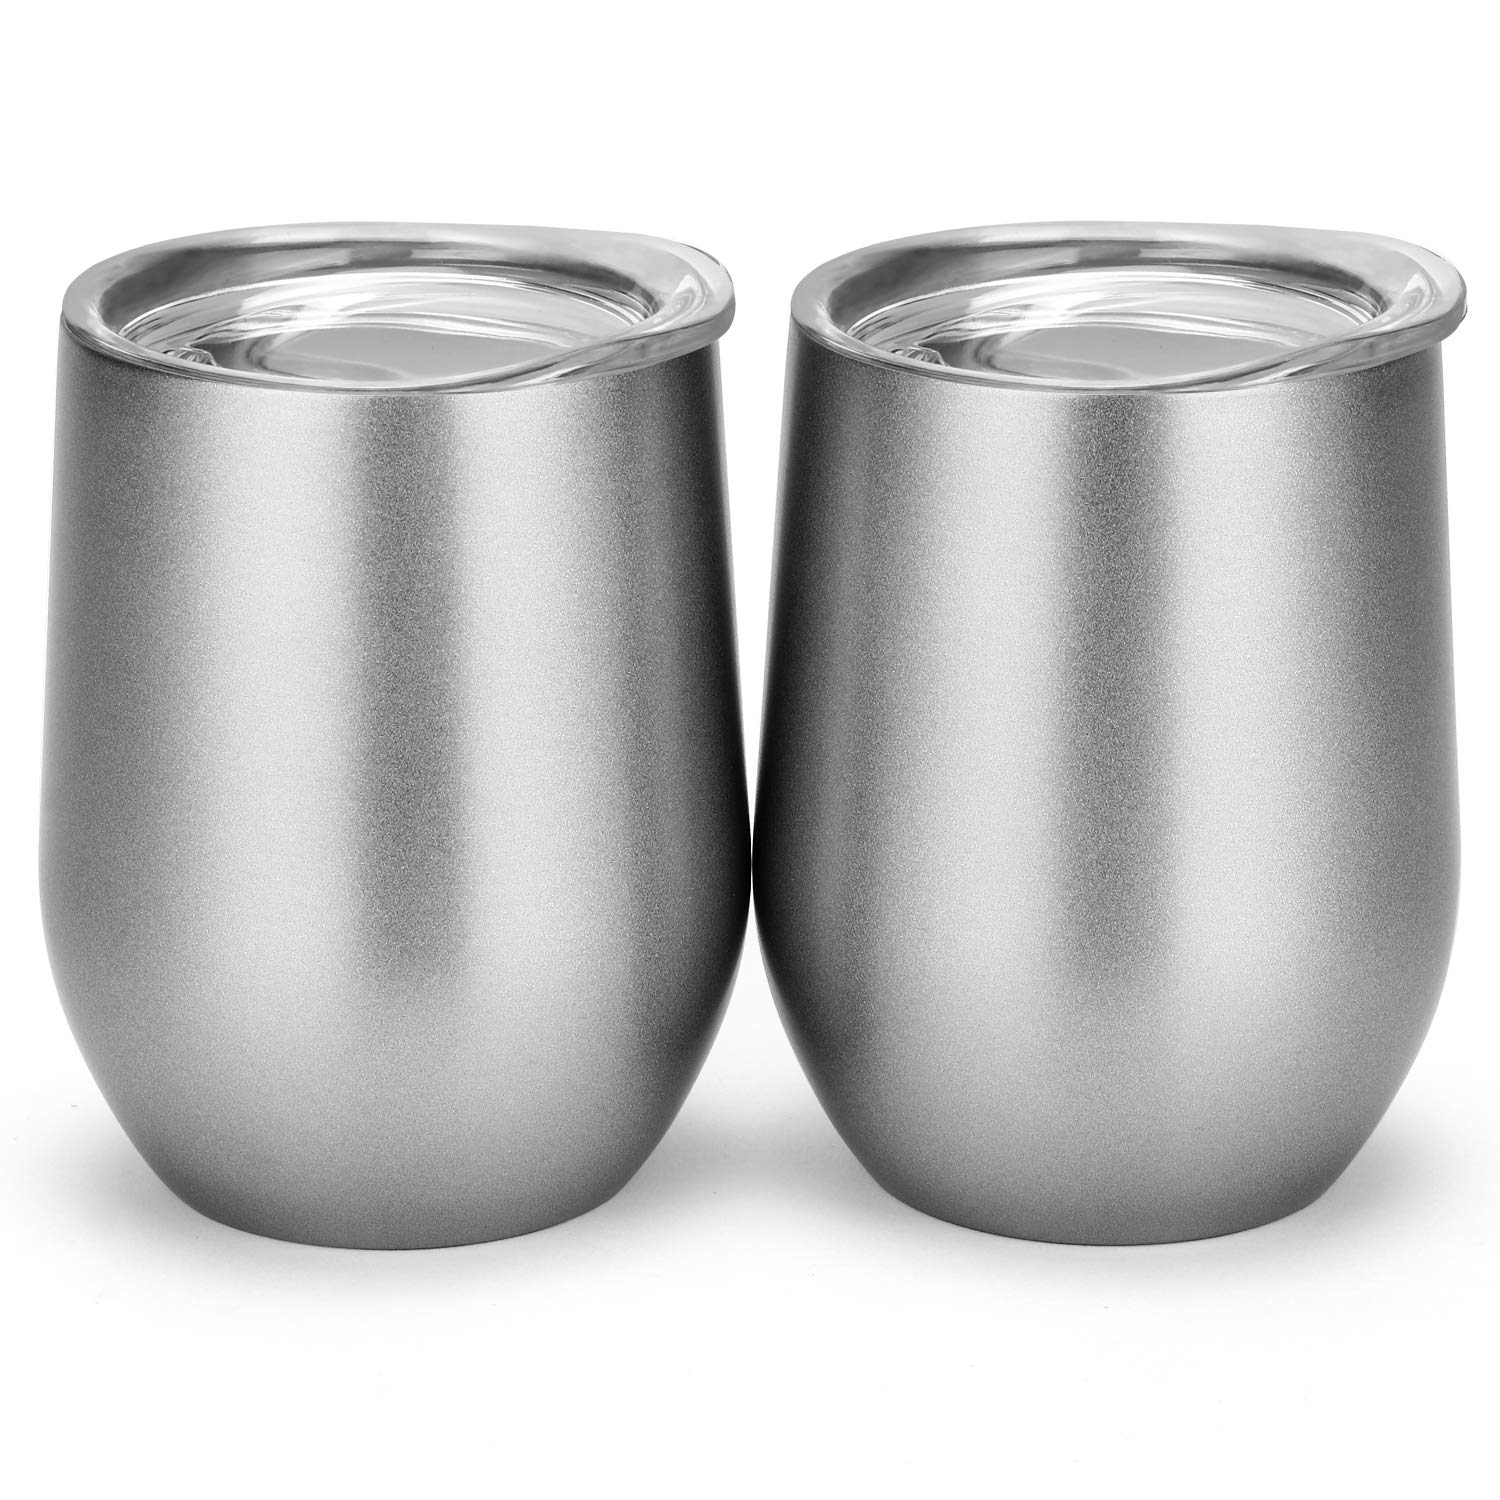 12 oz Double-insulated Stemless Glass, Stainless Steel Tumbler Cup with Lids for Wine, Coffee, Drinks, Champagne, Cocktails, 2 Sets (Silvery)